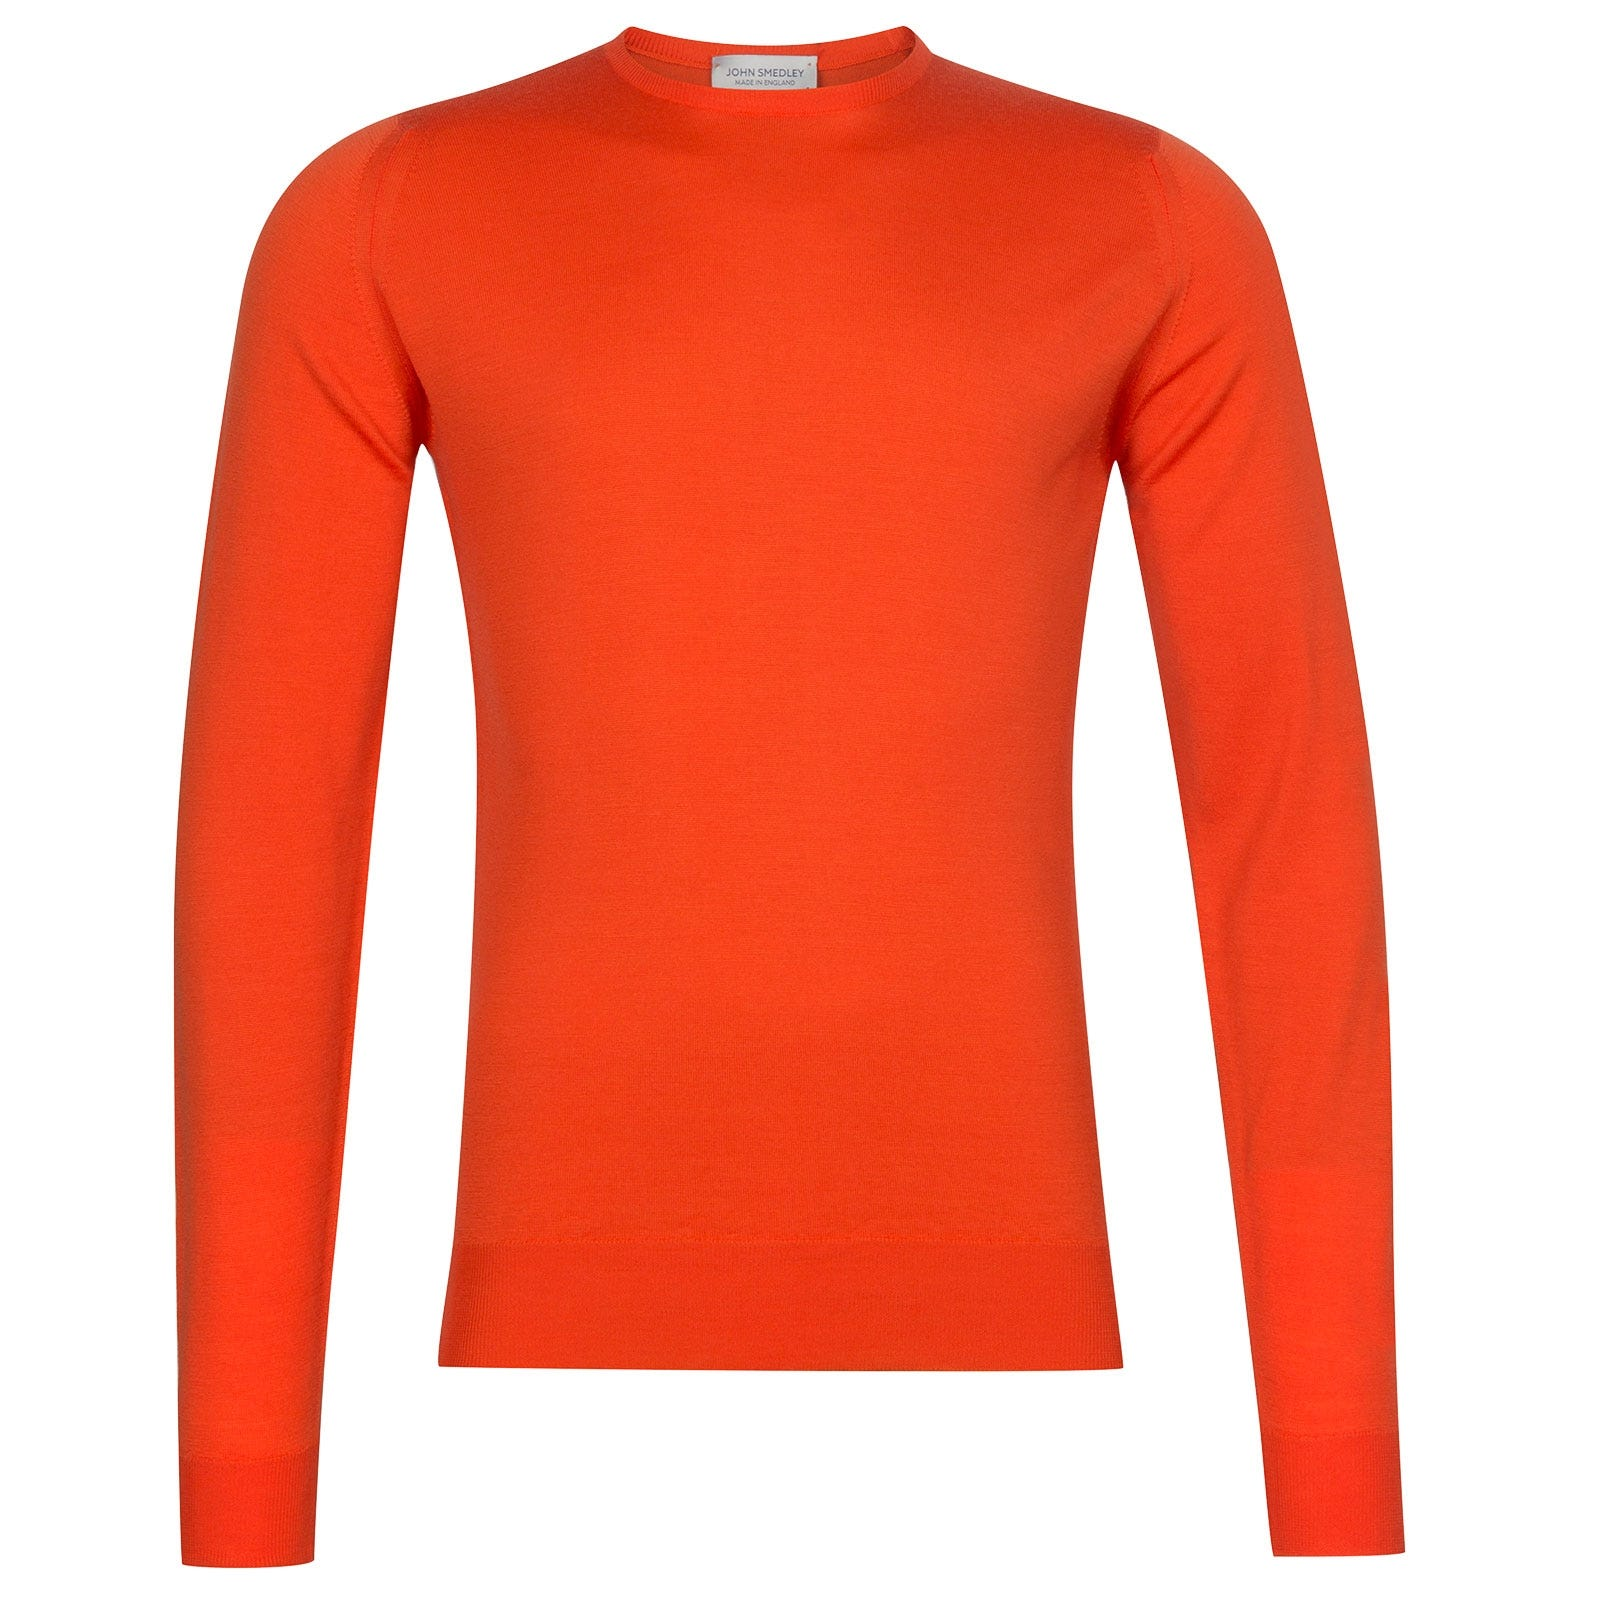 John Smedley Lundy Merino Wool Pullover in Blaze Orange-M